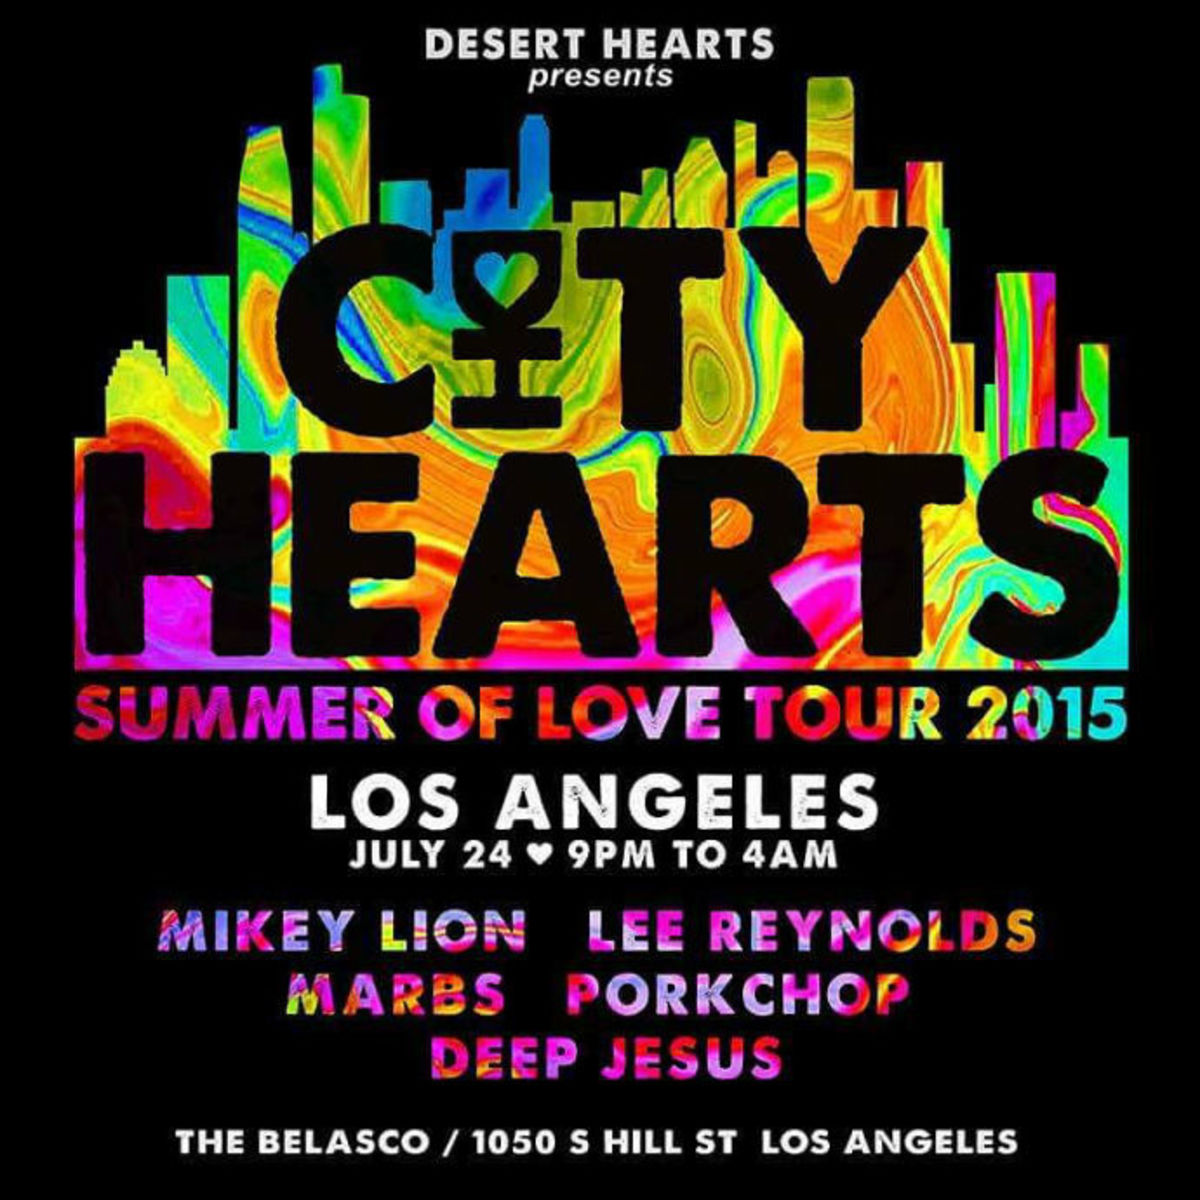 City Hearts LA 7/24 and an Exclusive Playlist From the Desert Hearts Crew